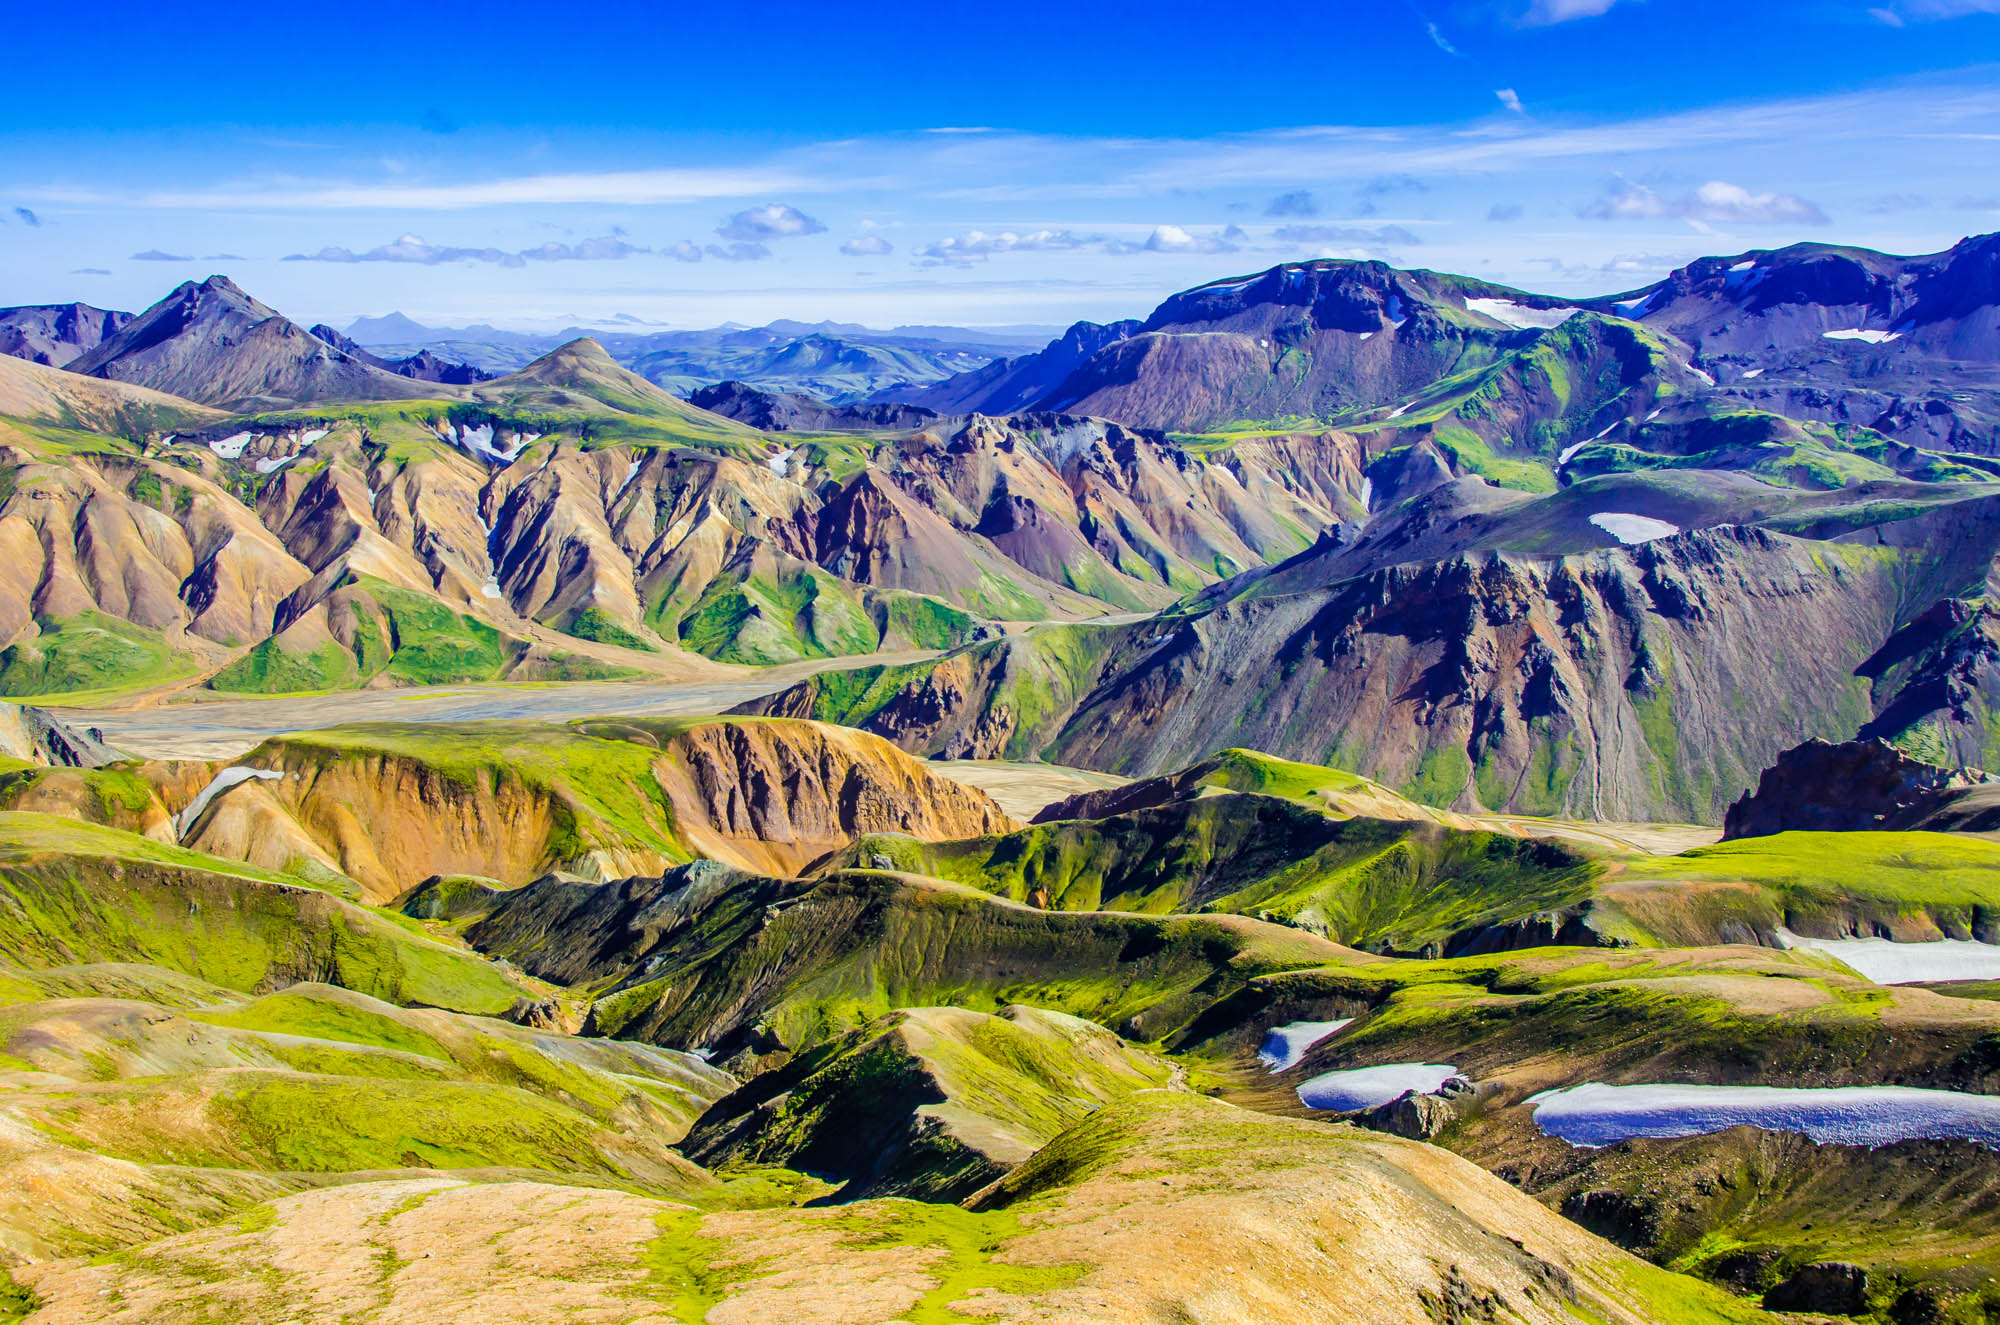 Private day tour from Reykjavik - Landmannalaugar trip